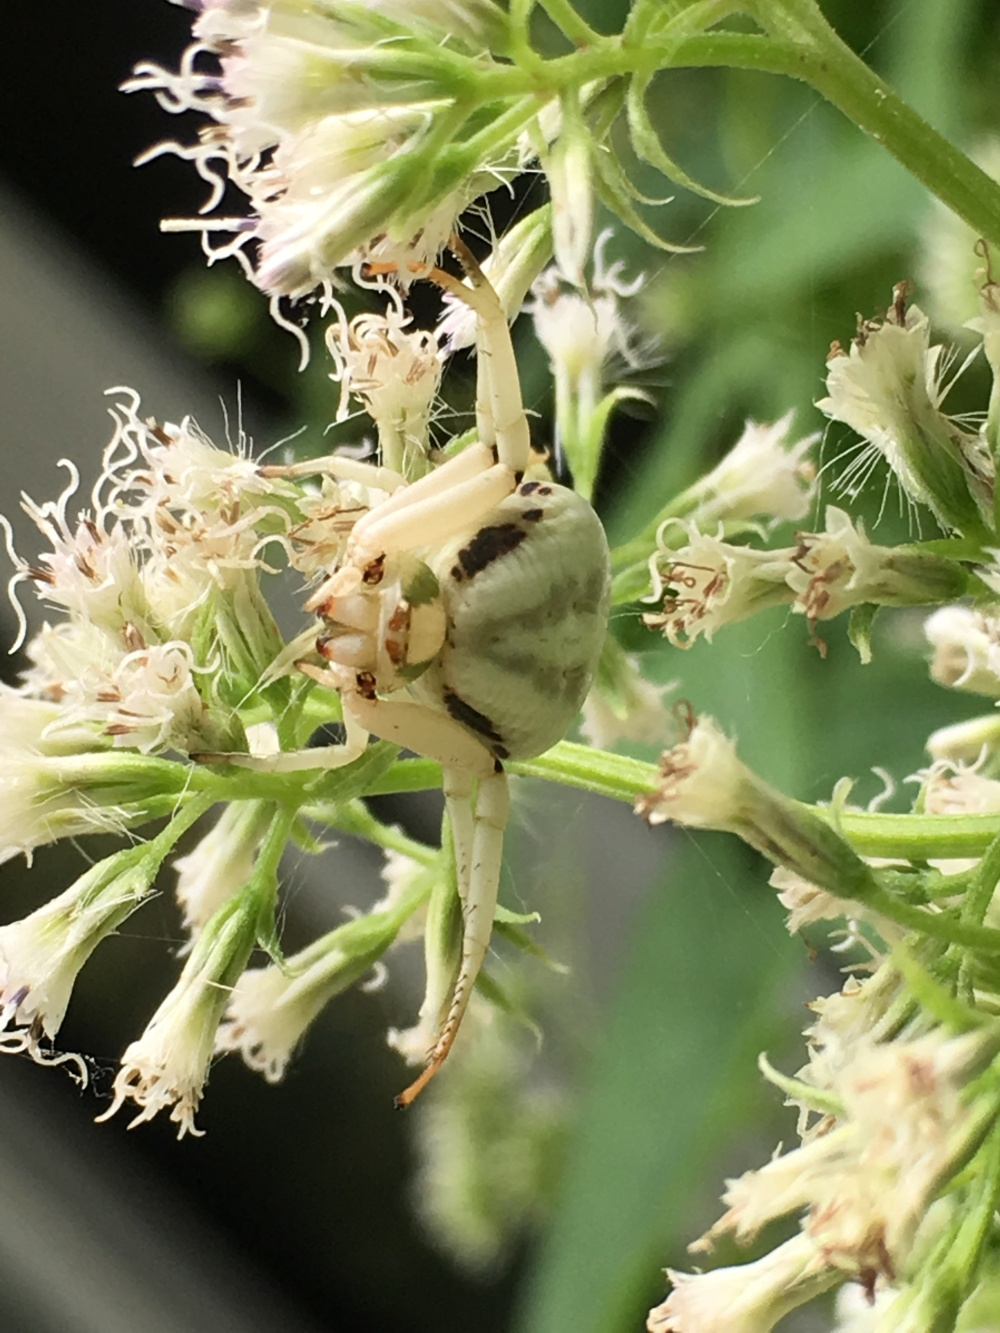 Whitebanded Crab Spider Misumenoides formosipes